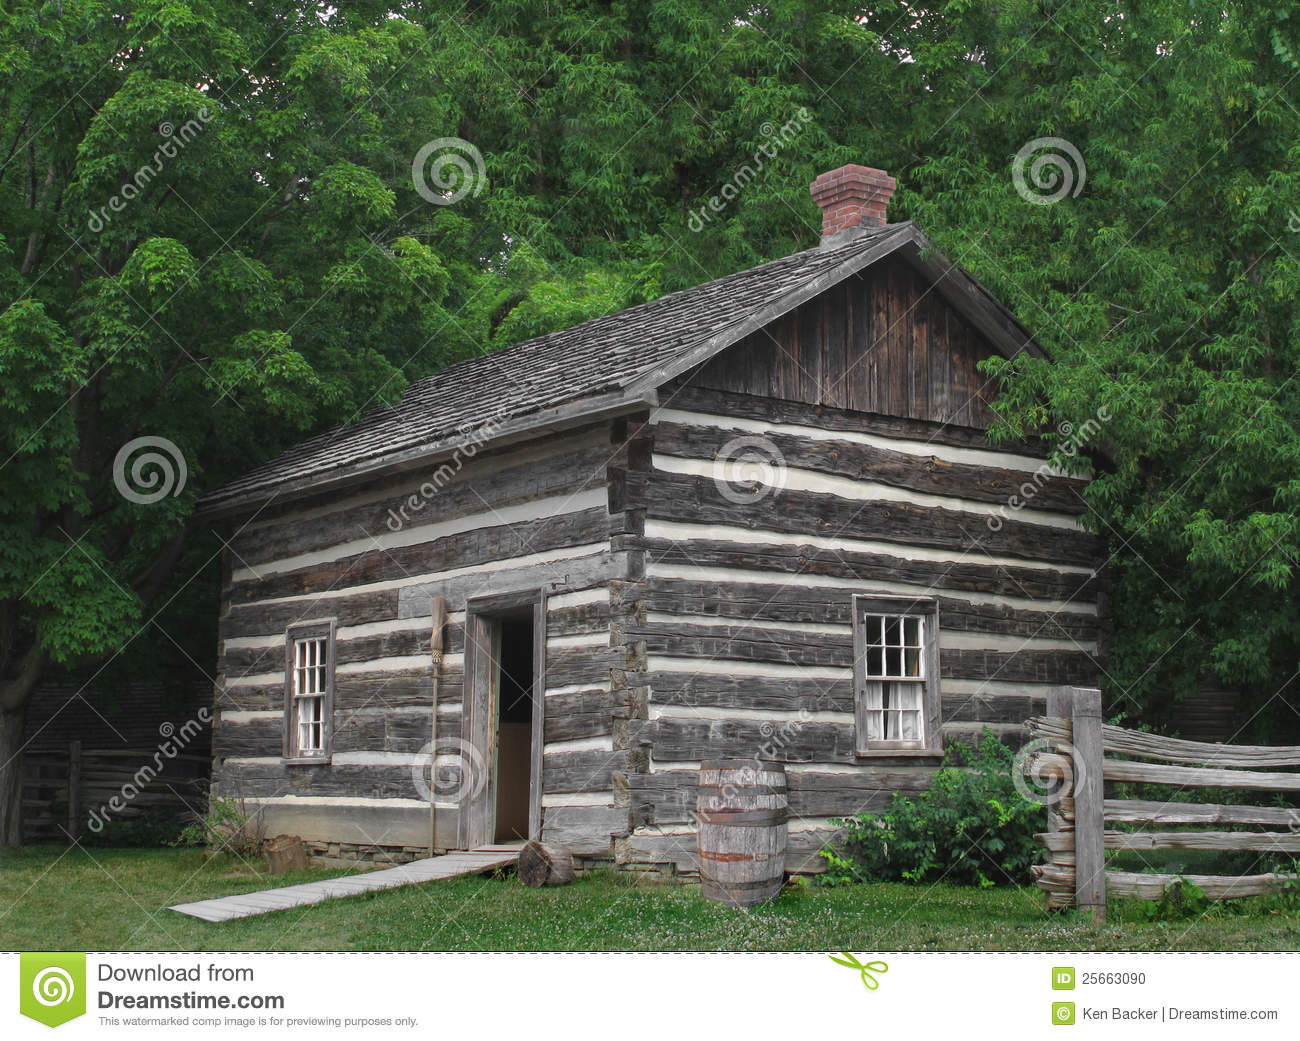 Small Log Cabin In The Trees Stock Photo Image 25663090